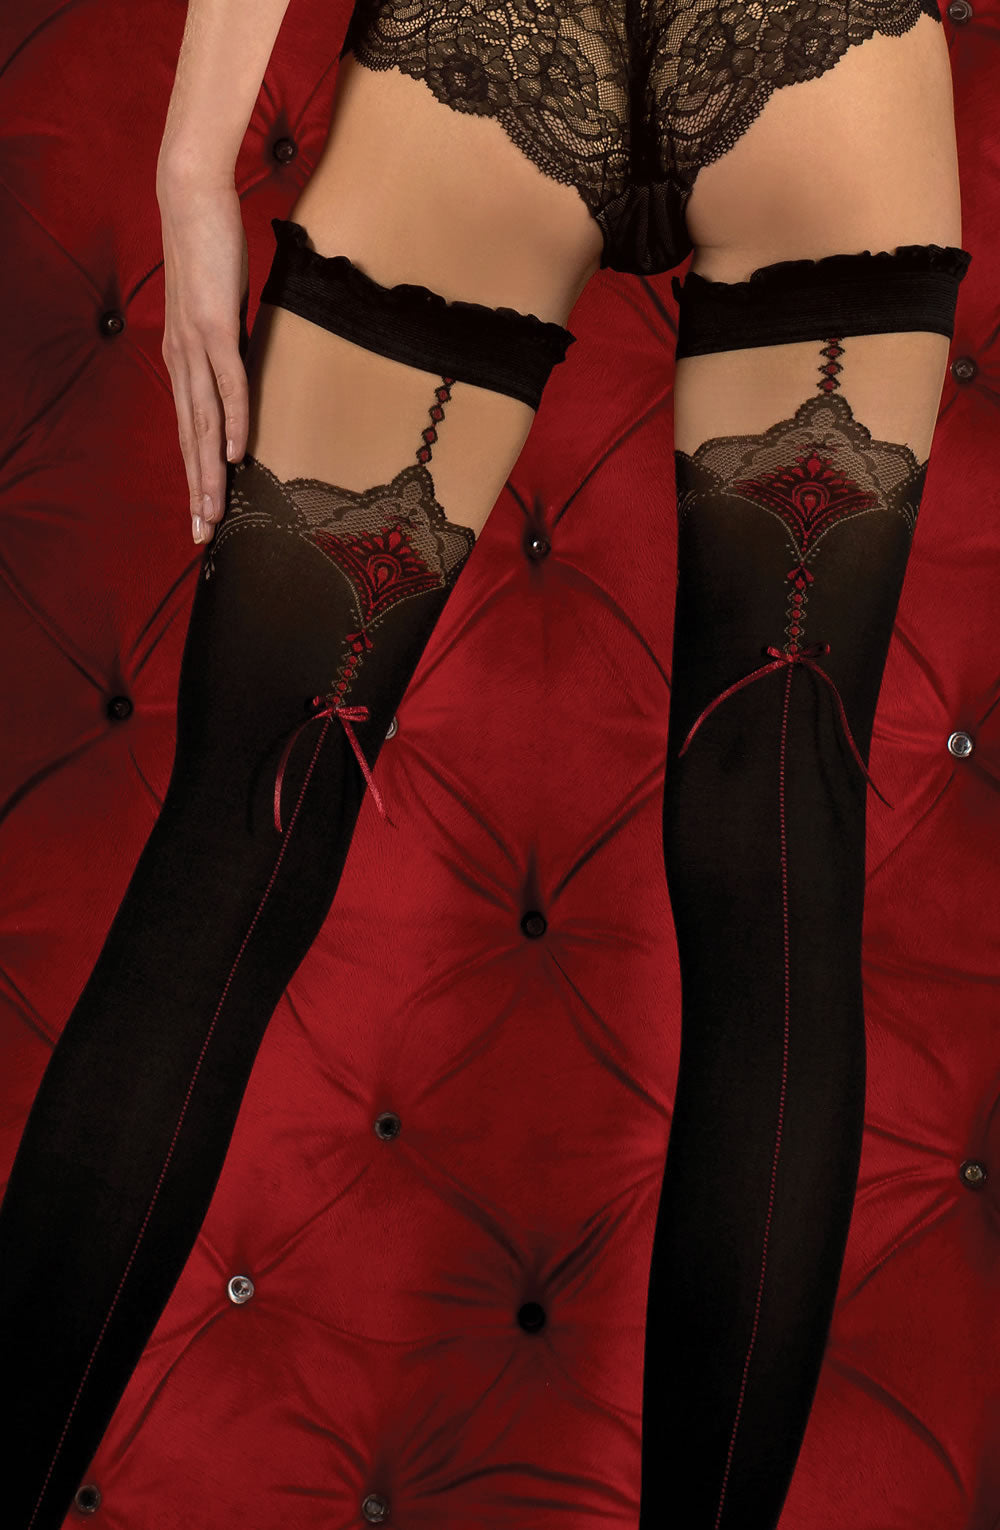 BALLERINA 346 Hold Ups Nero/Red  Ballerina, Hold Ups, Hosiery, NEWLY-IMPORTED, Our TOP Valentine's Gifts!, Valentine, Valentines - So Luxe Lingerie